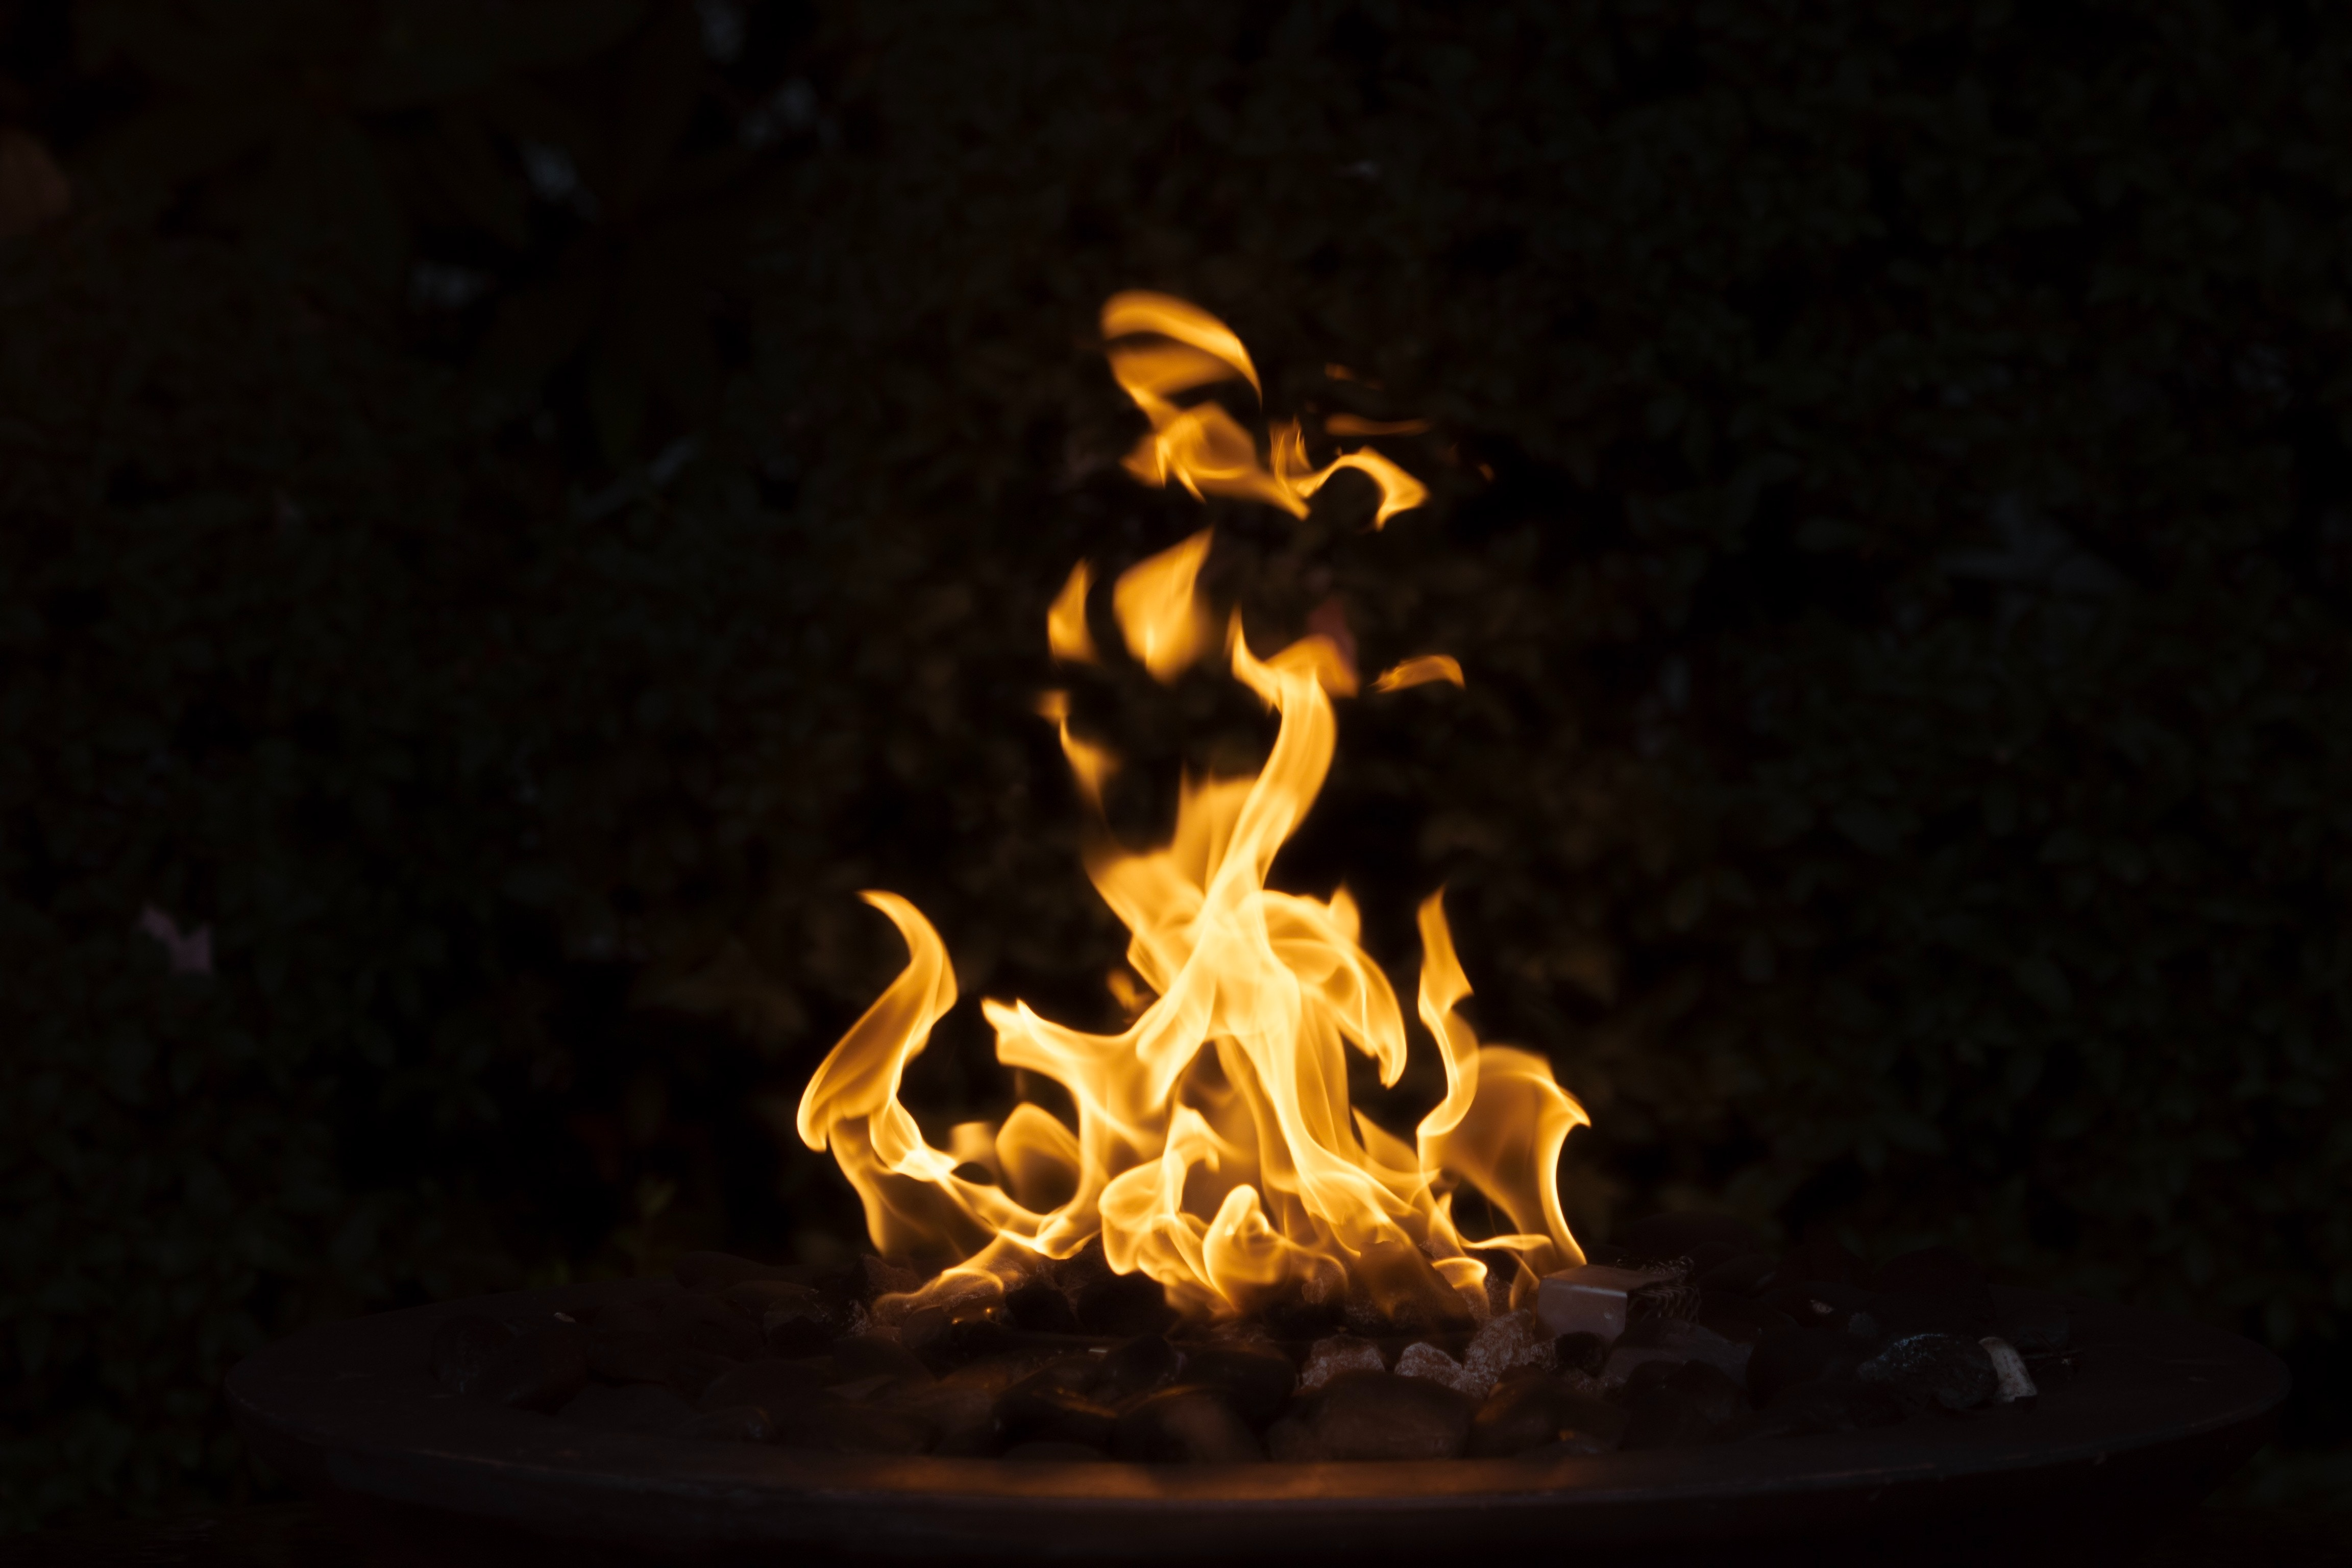 129304 Screensavers and Wallpapers Bonfire for phone. Download Dark, Fire, Bonfire, Flame, Combustion pictures for free